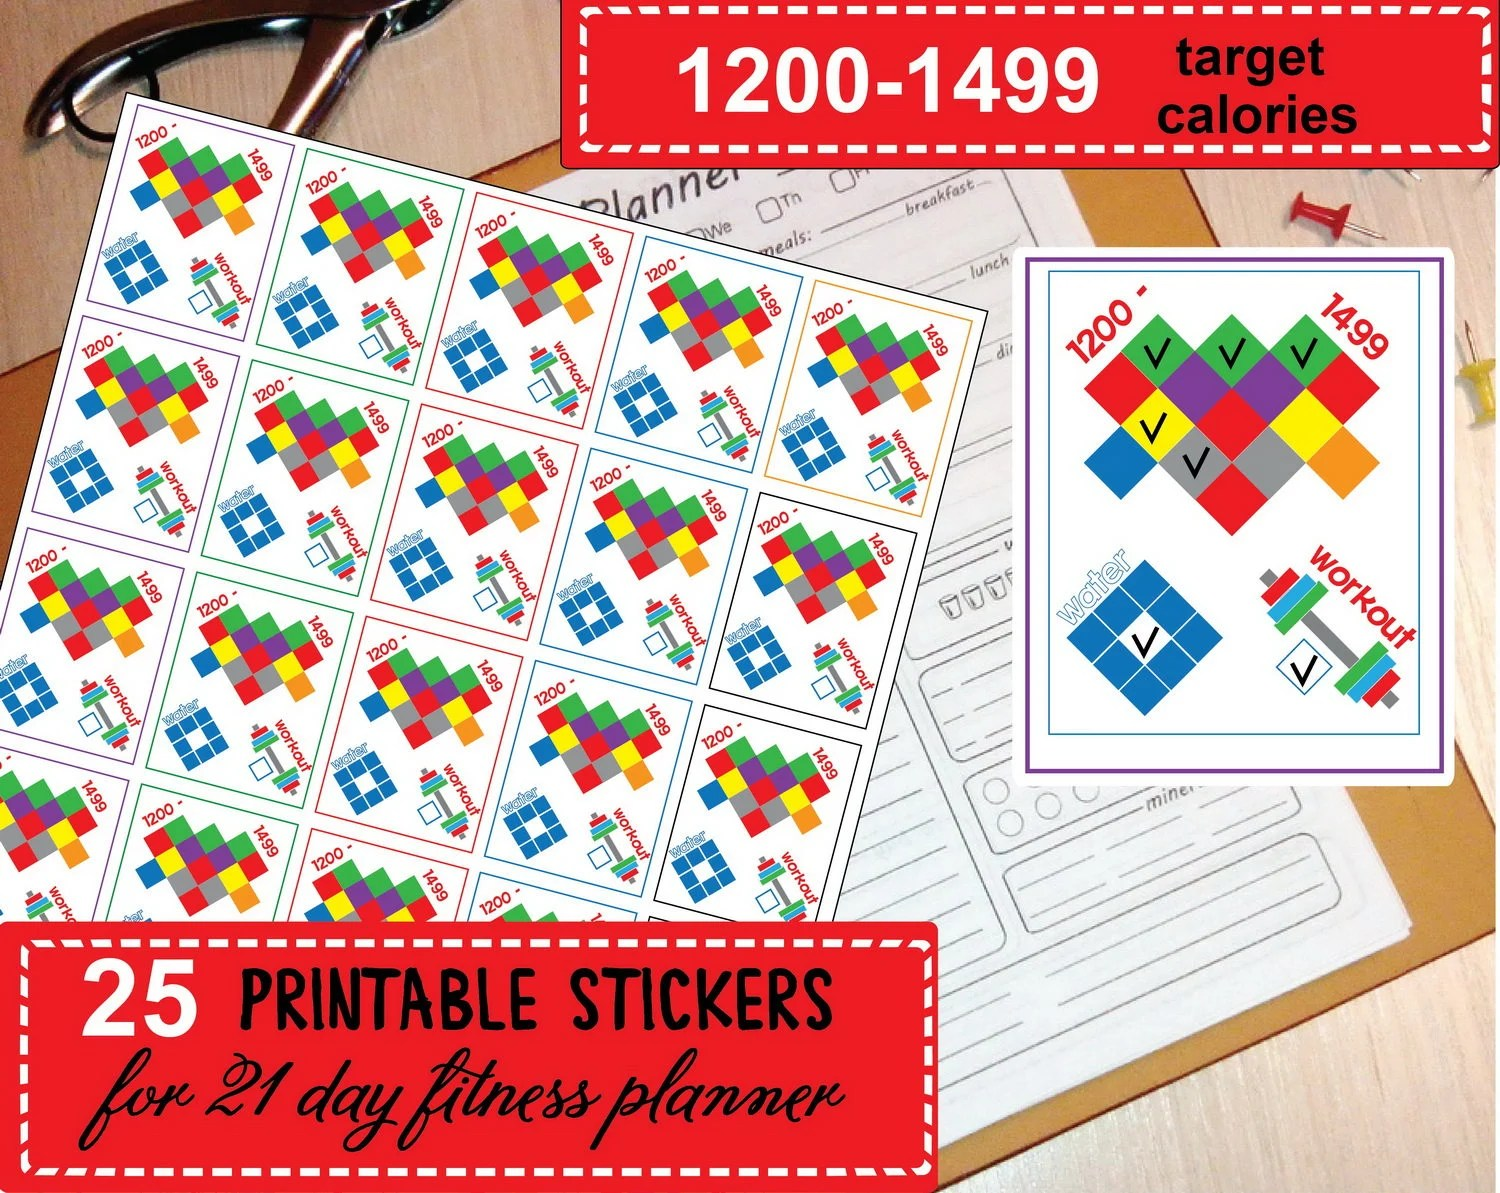 21 Day Fitness Planner Stickers Stickers Fort To Use 21